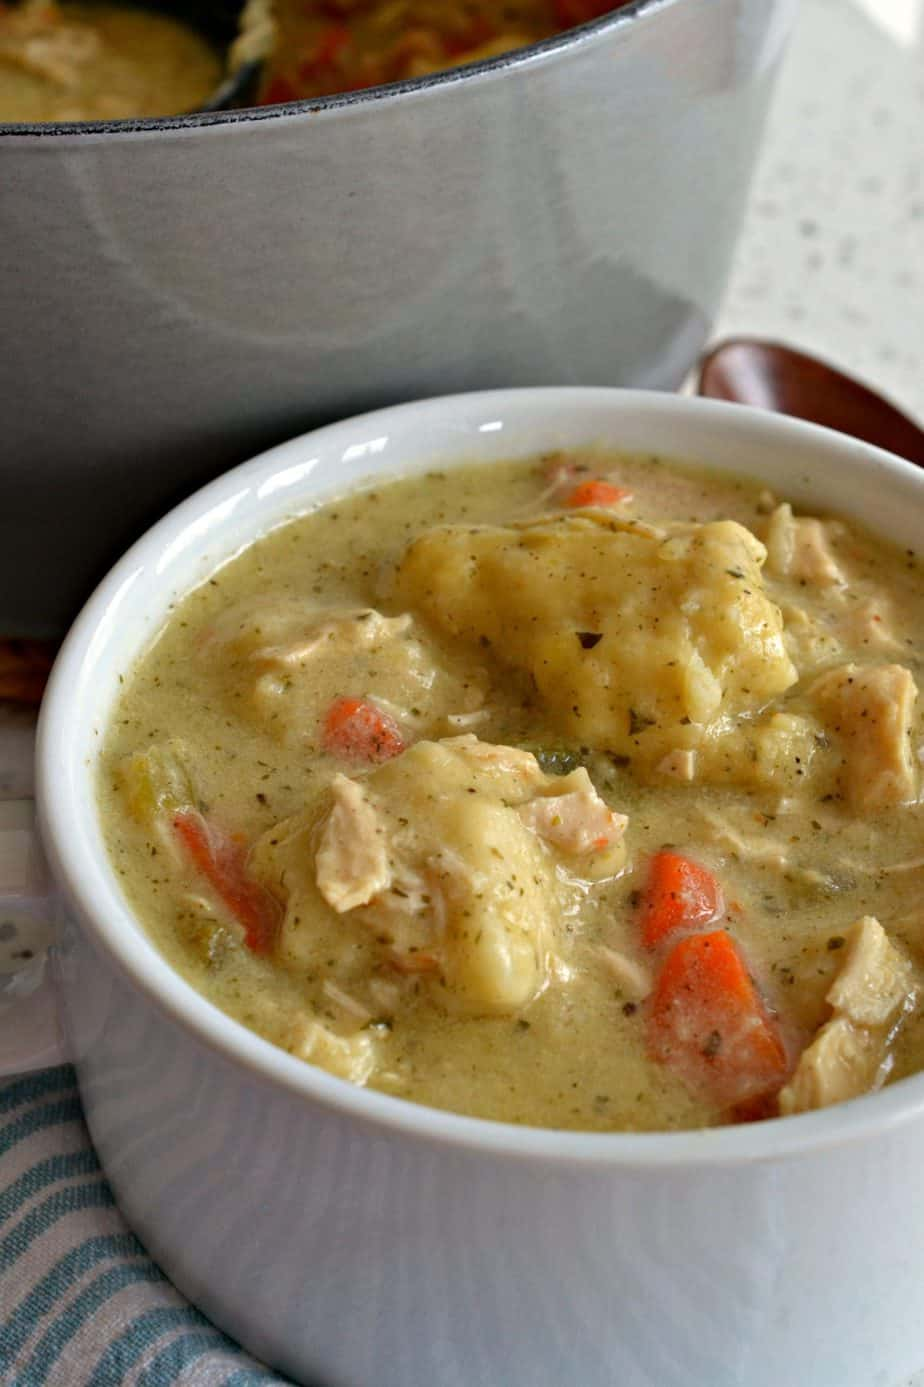 The ultimate comfort soup combining hearty vegetables, tender chicken and homemade dumplings just like grandma used to make.